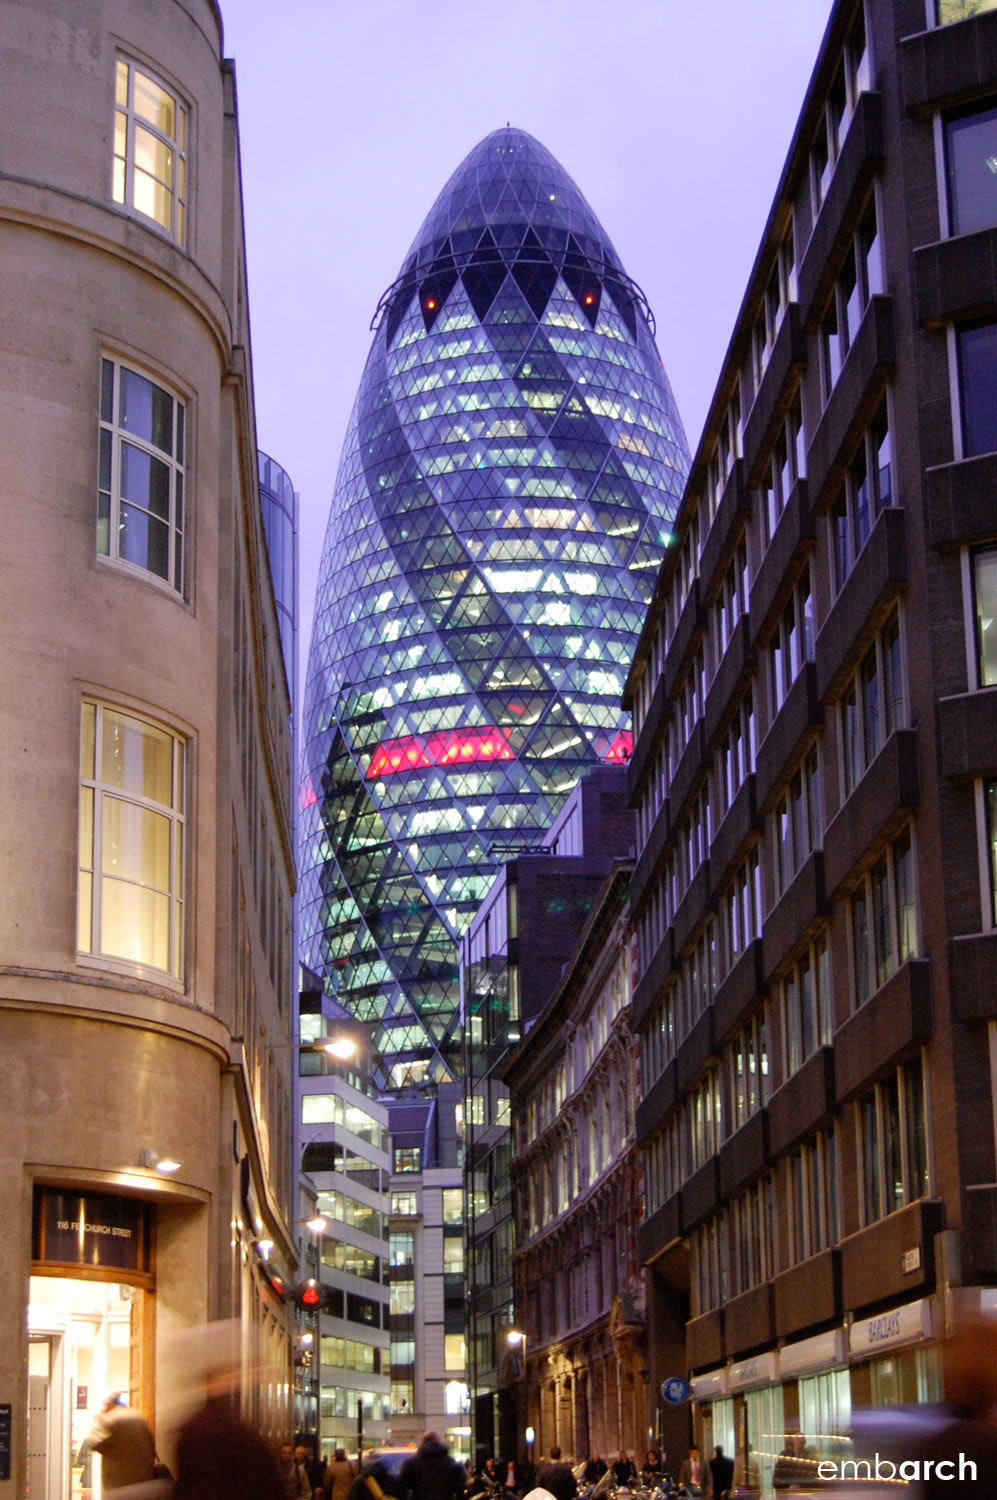 30 St. Mary's Axe